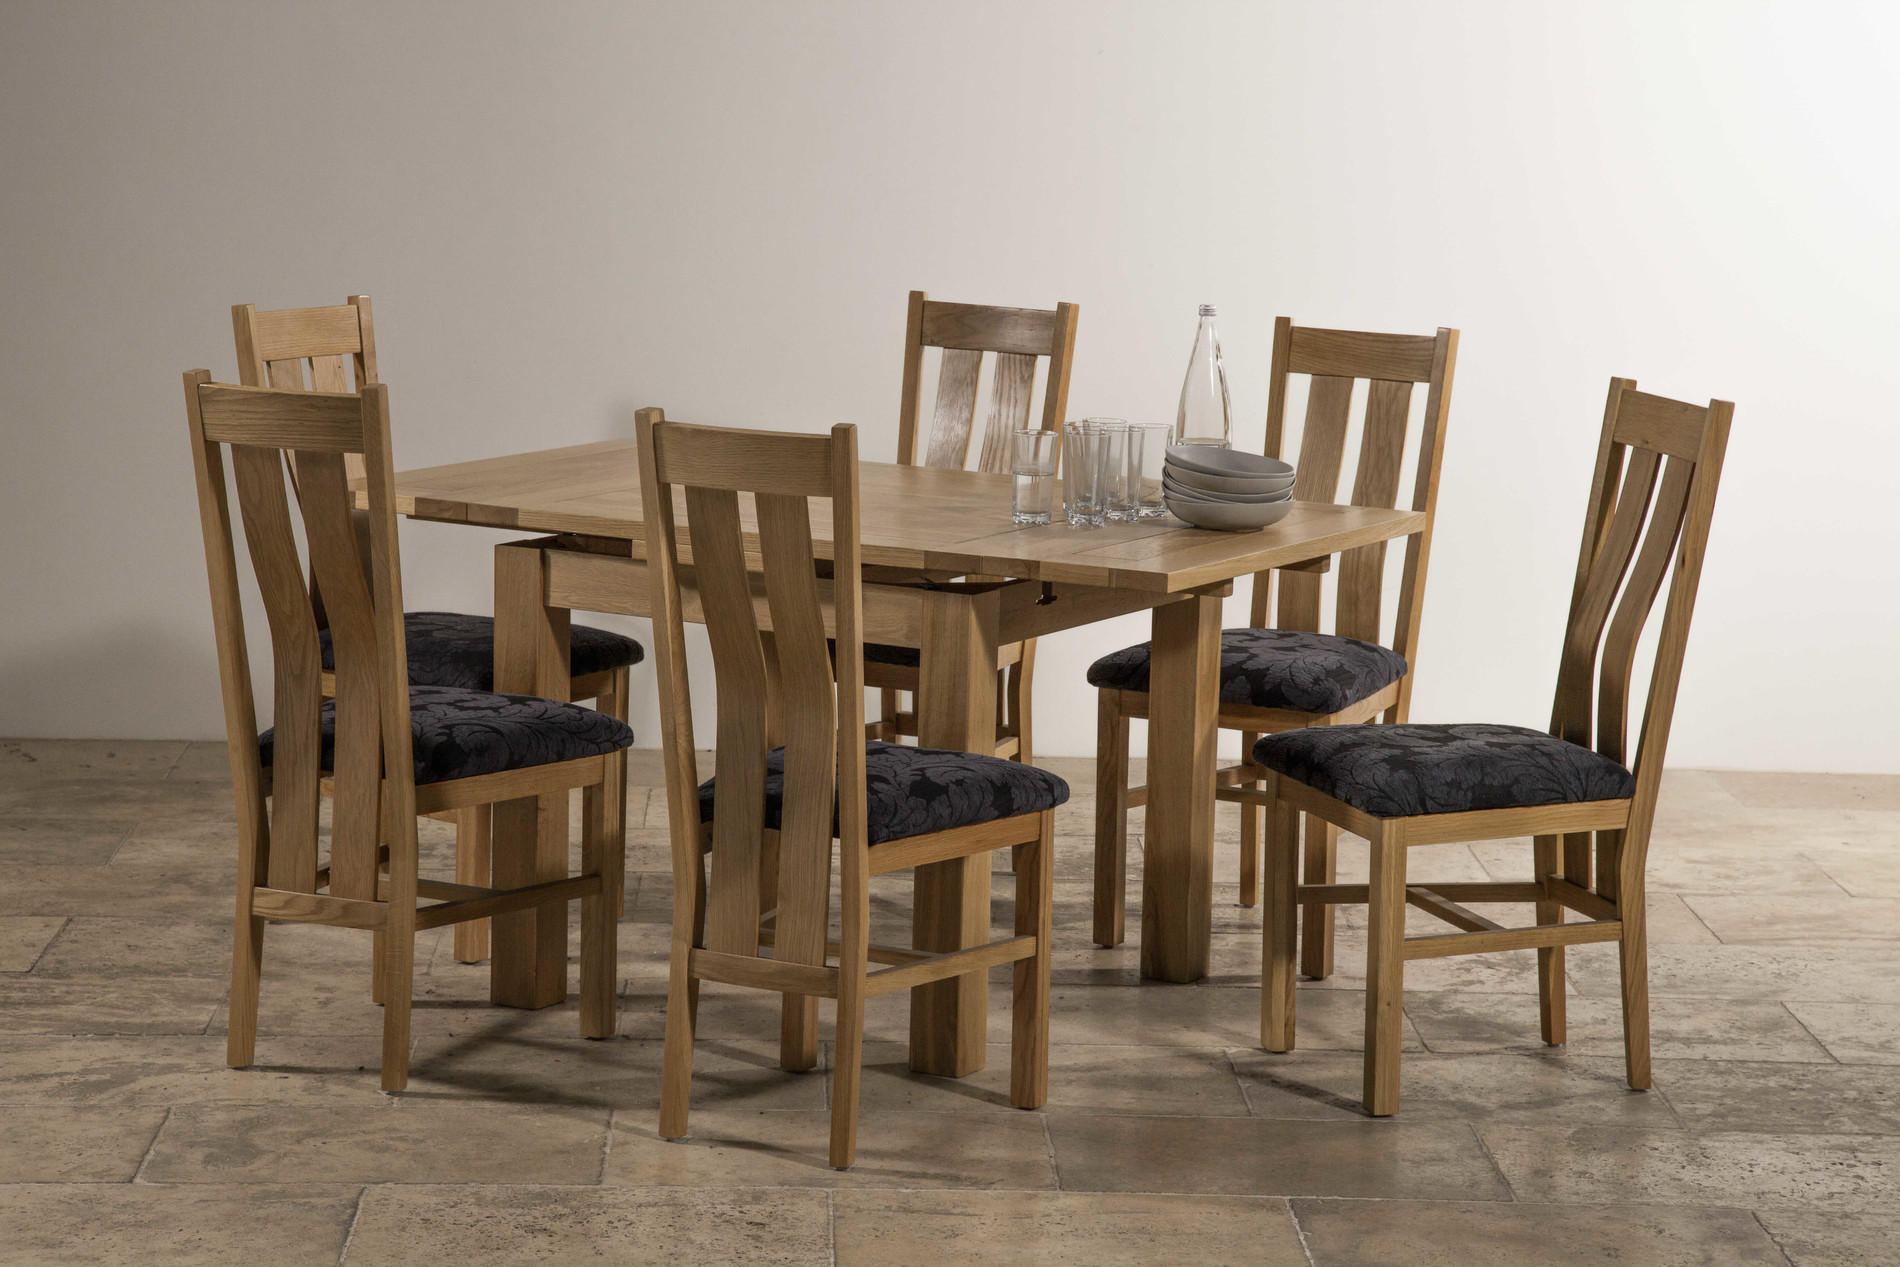 Dorset 3ft x 3ft Natural Solid Oak Extending Dining Table  : dorset 3ft x 3ft natural solid oak extending dining table seats up to 6 people extended 6 scroll back patterned navy blue fabric chair with solid 54b3bbd6da6d7 from www.oakfurnitureland.co.uk size 1900 x 1267 jpeg 468kB